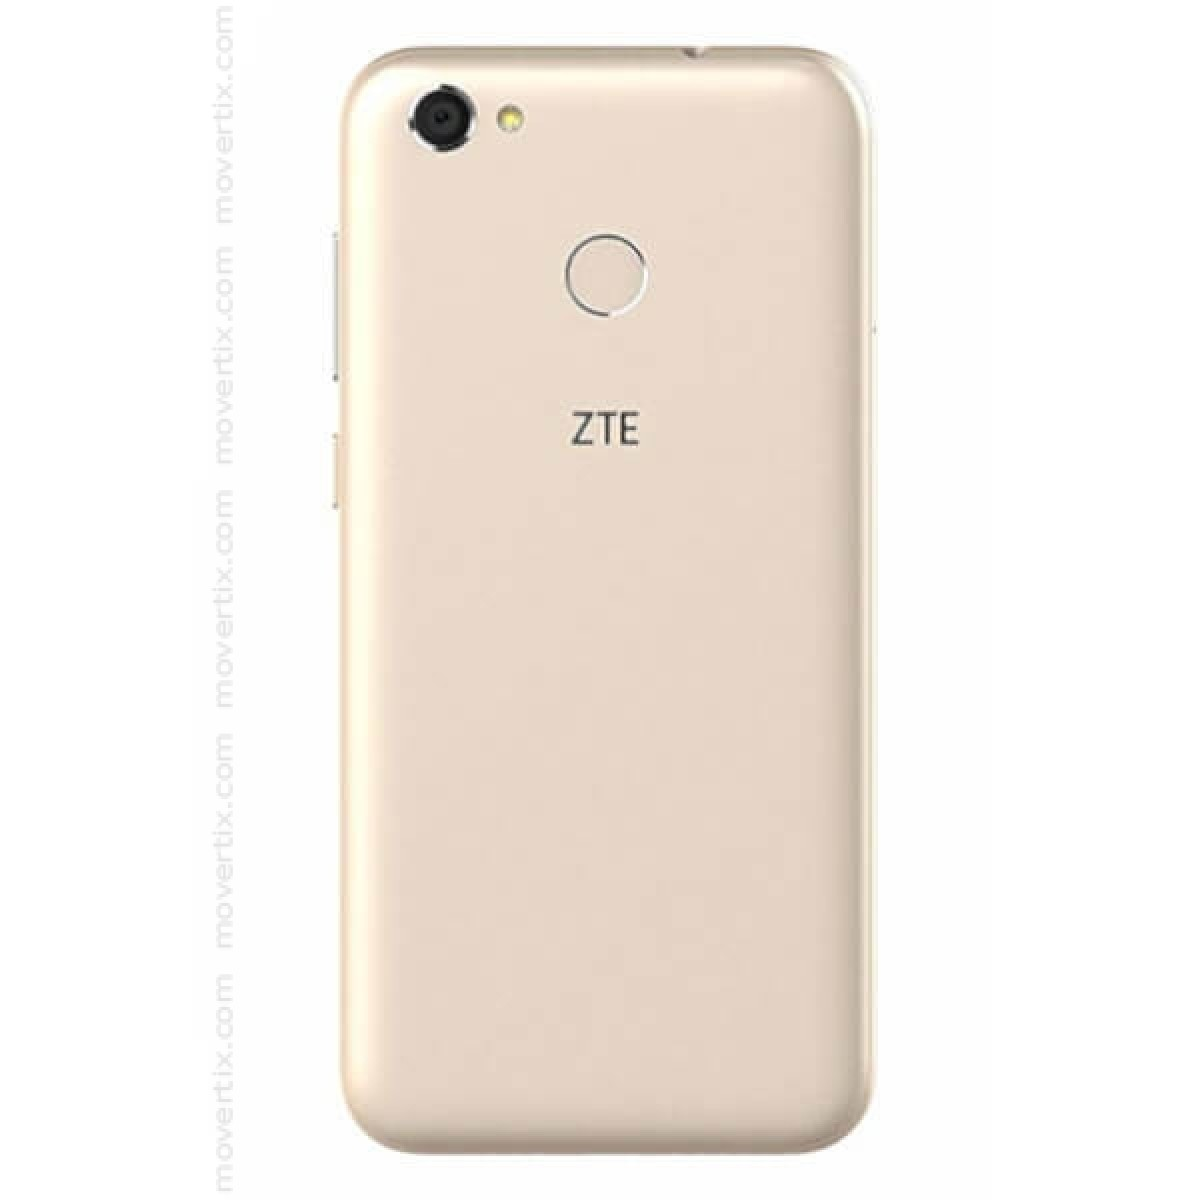 ZTE Blade A6 Dual SIM Gold 16GB and 2GB RAM